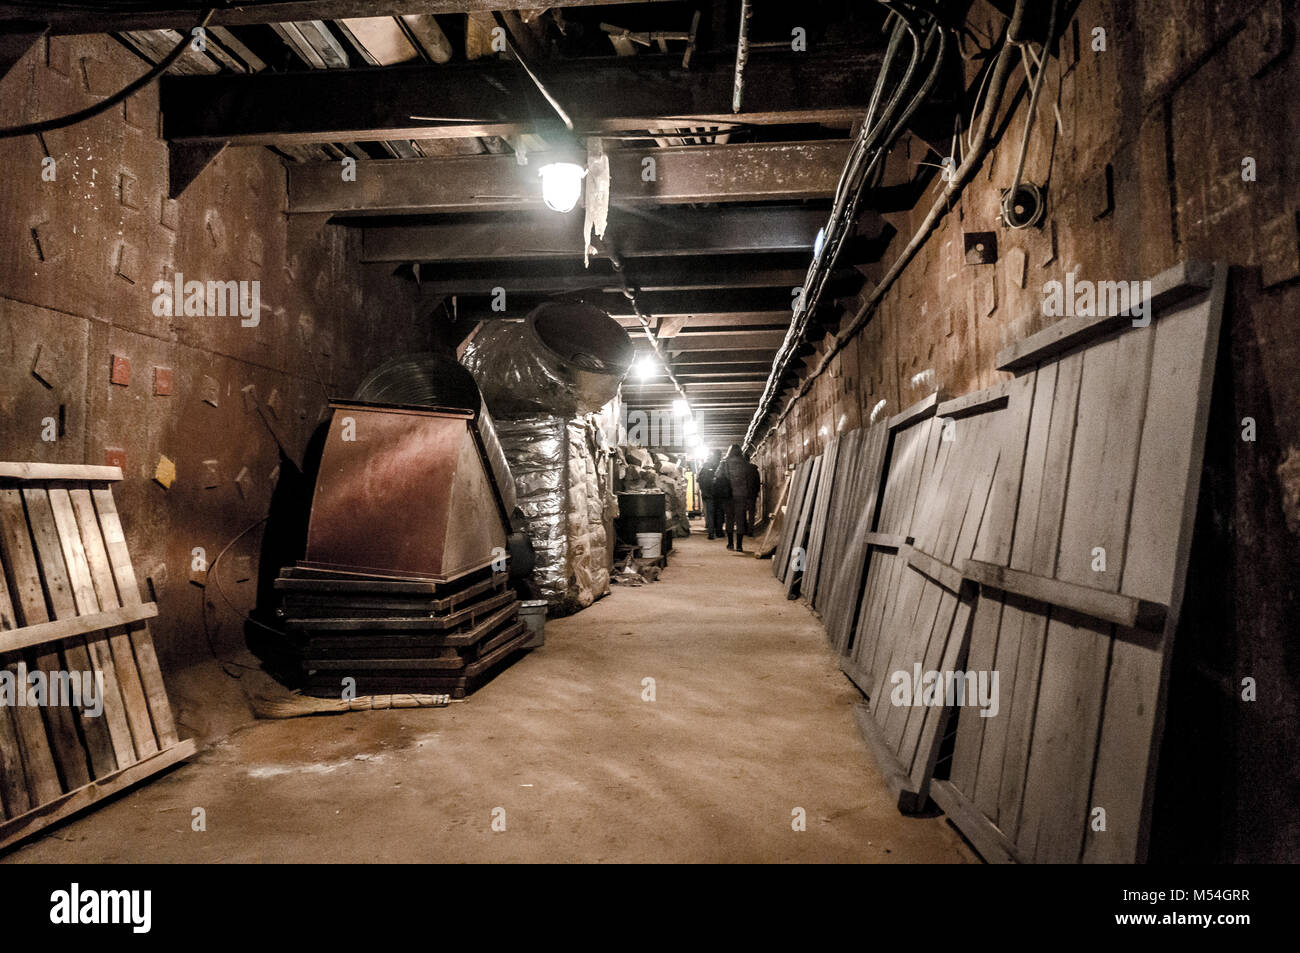 Moscow, Russia - October 25, 2017: Tunnel at Bunker-42, anti-nuclear underground facility built in 1956 as command - Stock Image